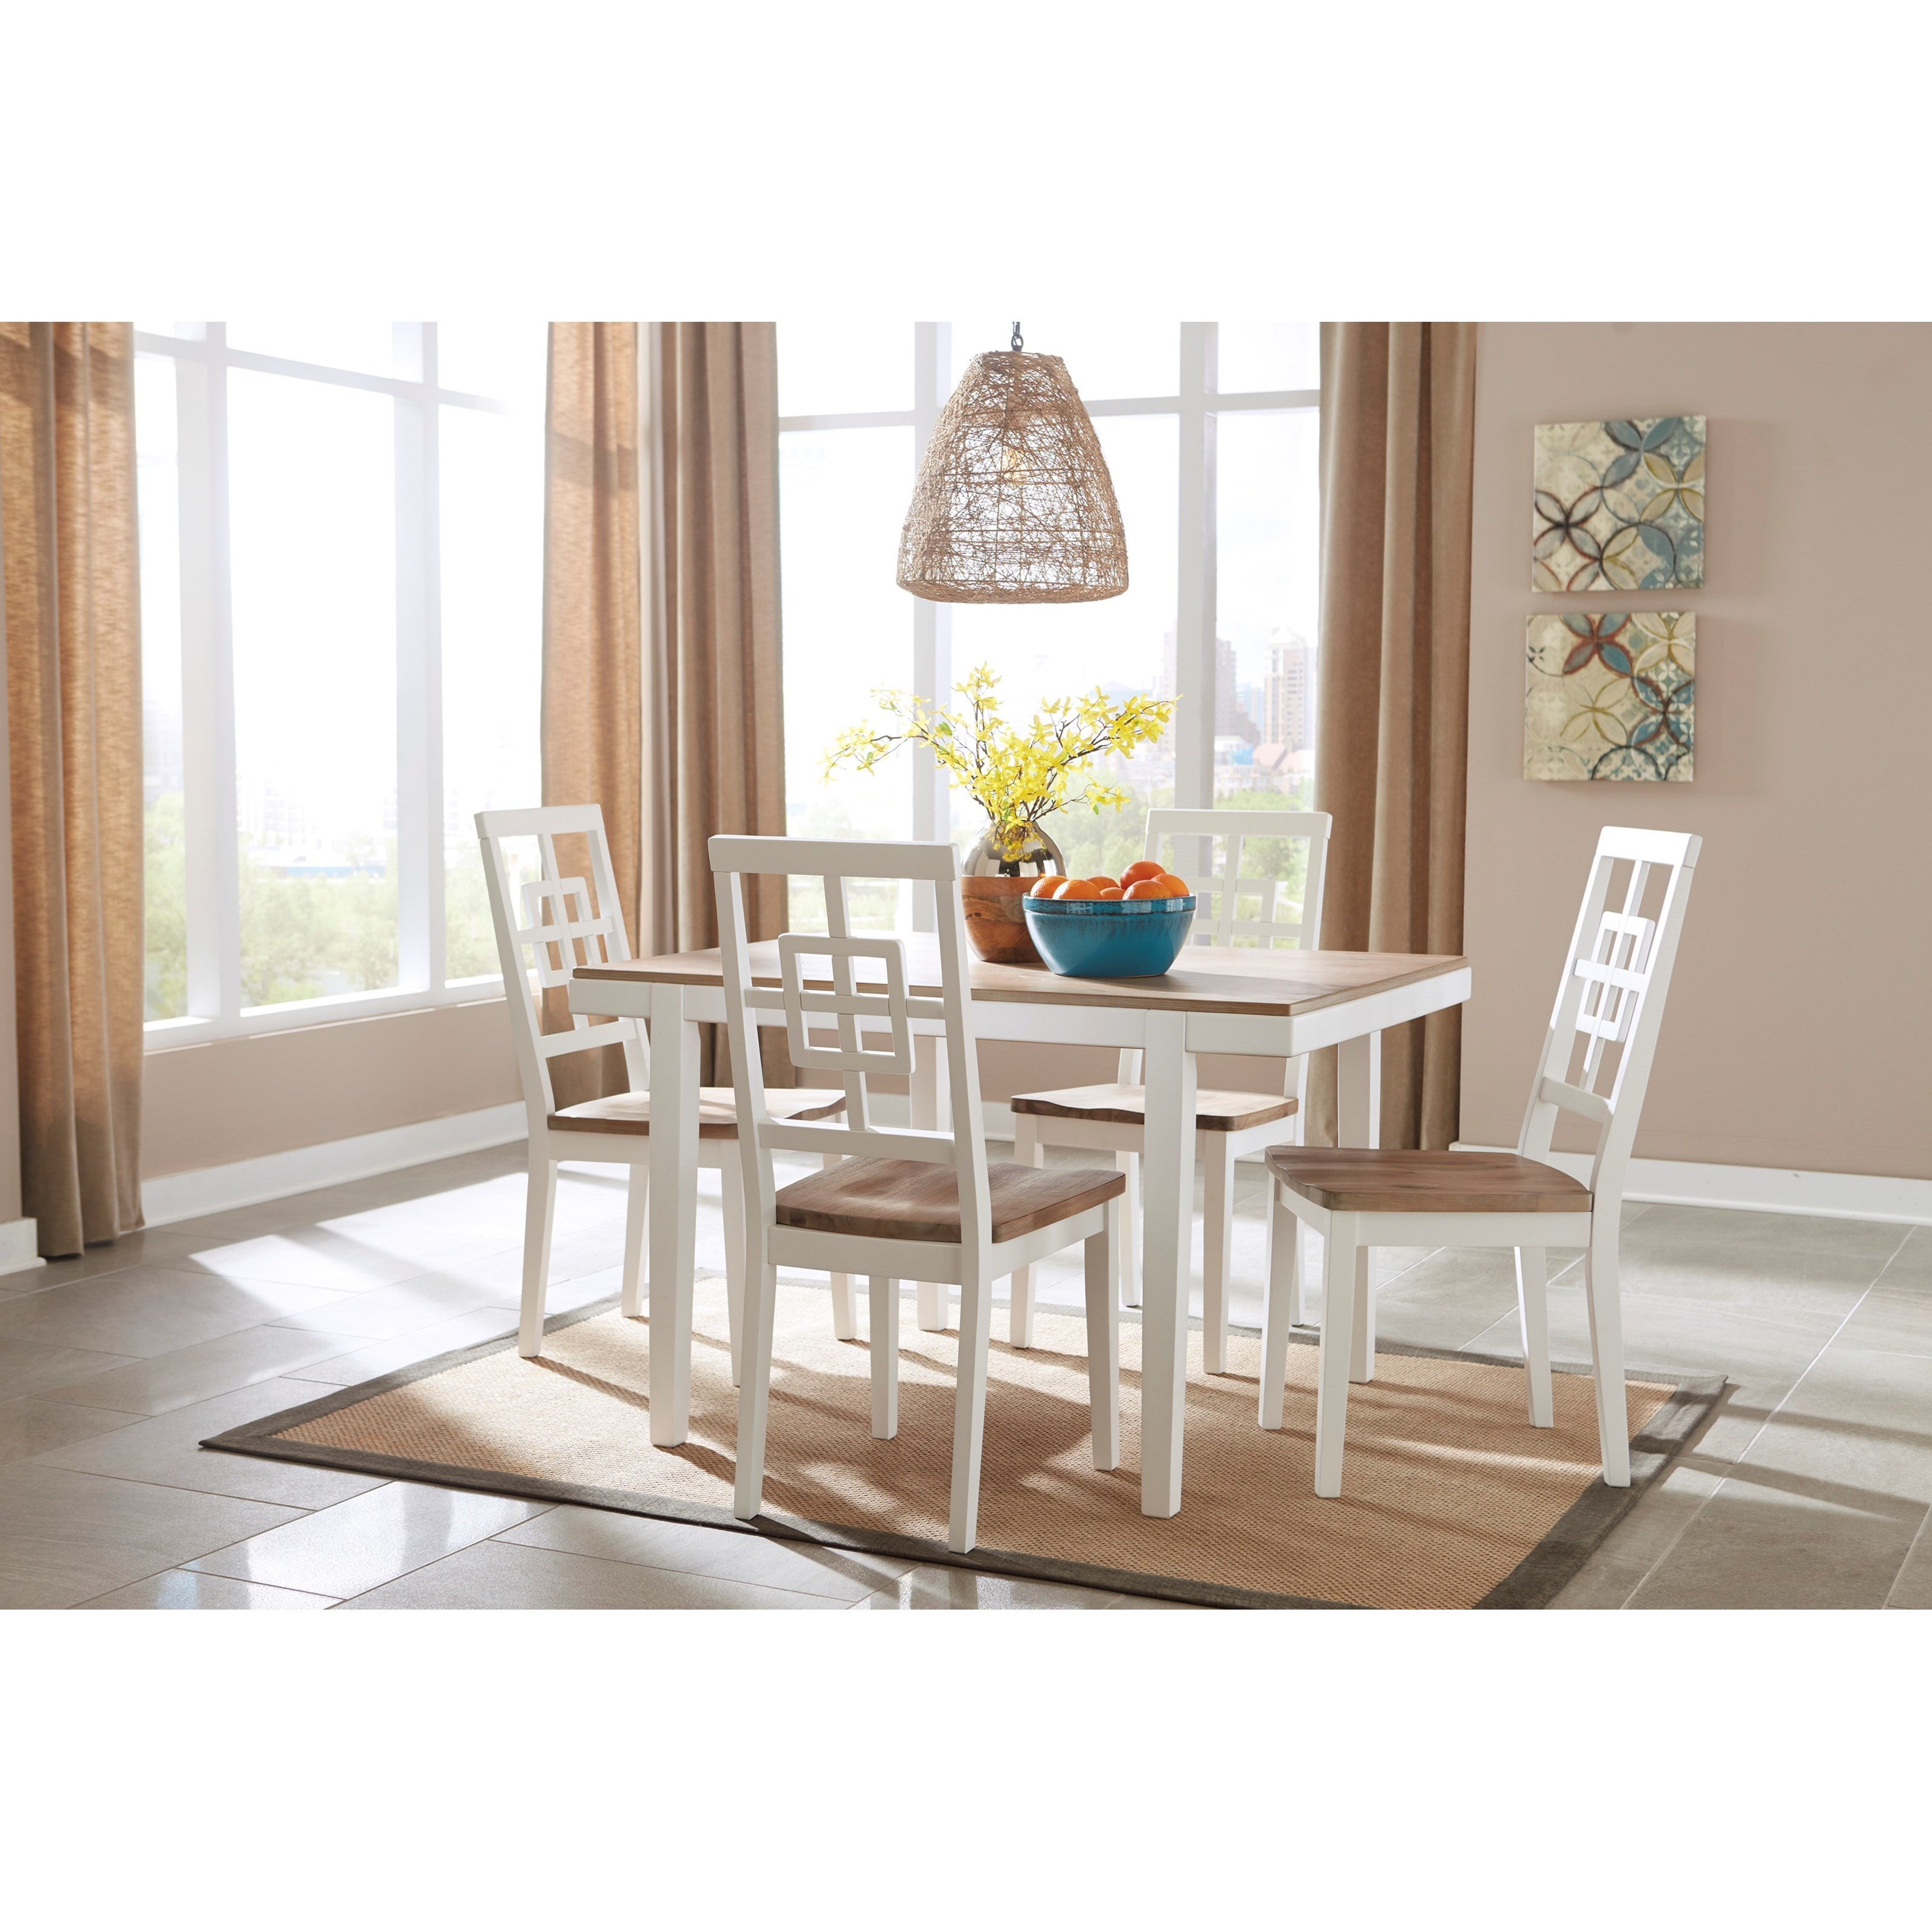 Signature design by ashley brovada contemporary white for Light colored dining room sets